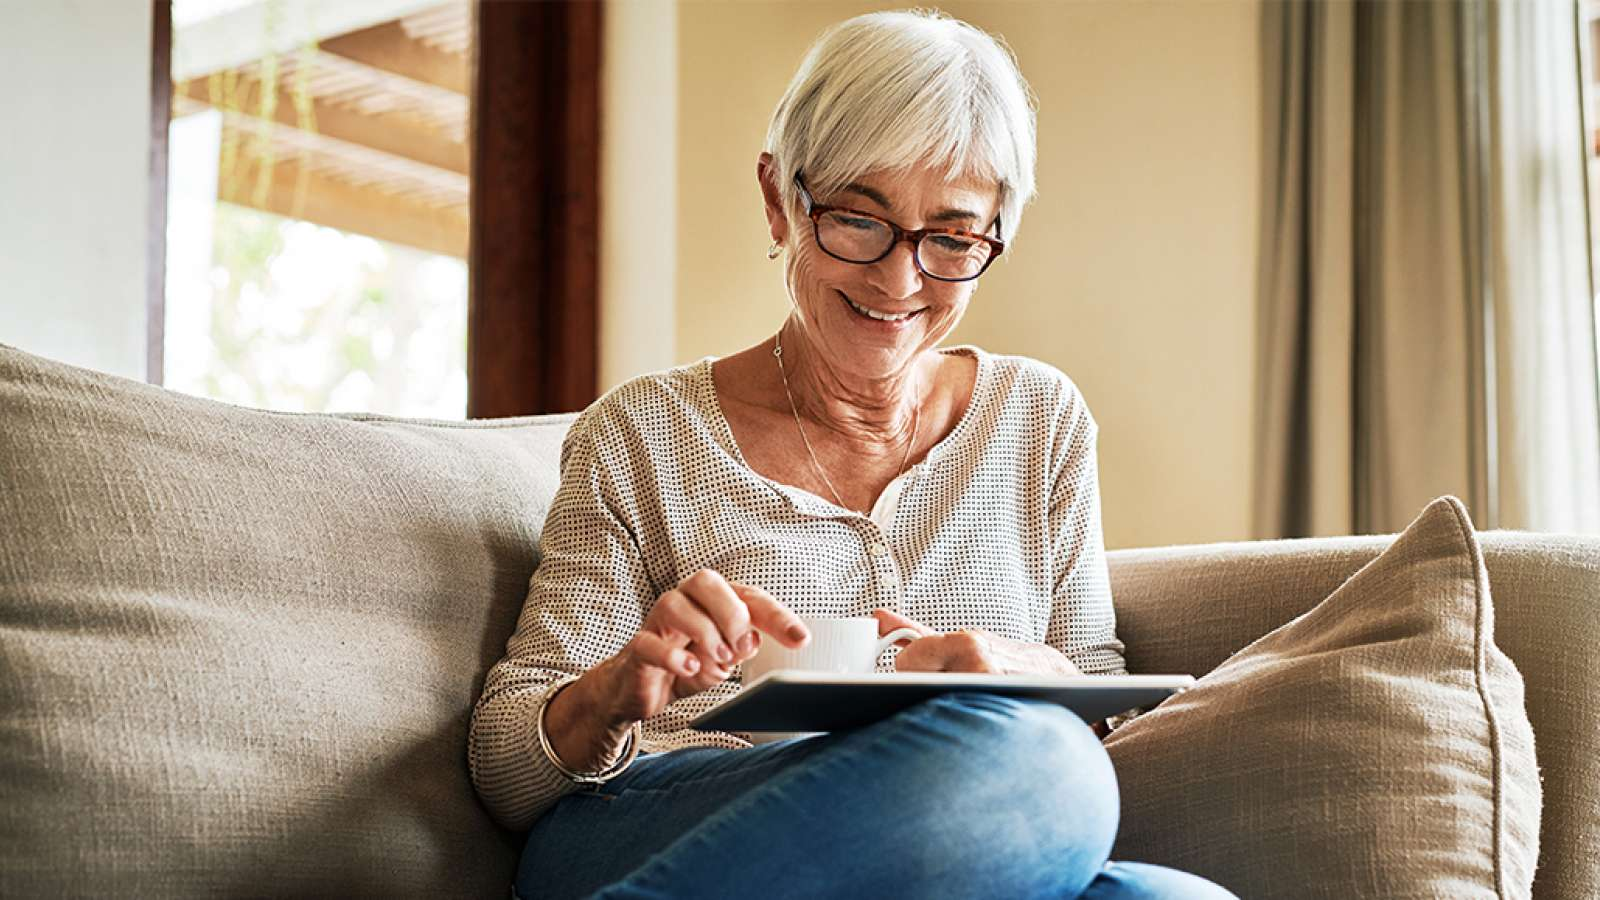 older woman sitting on a couch with coffee and iPad